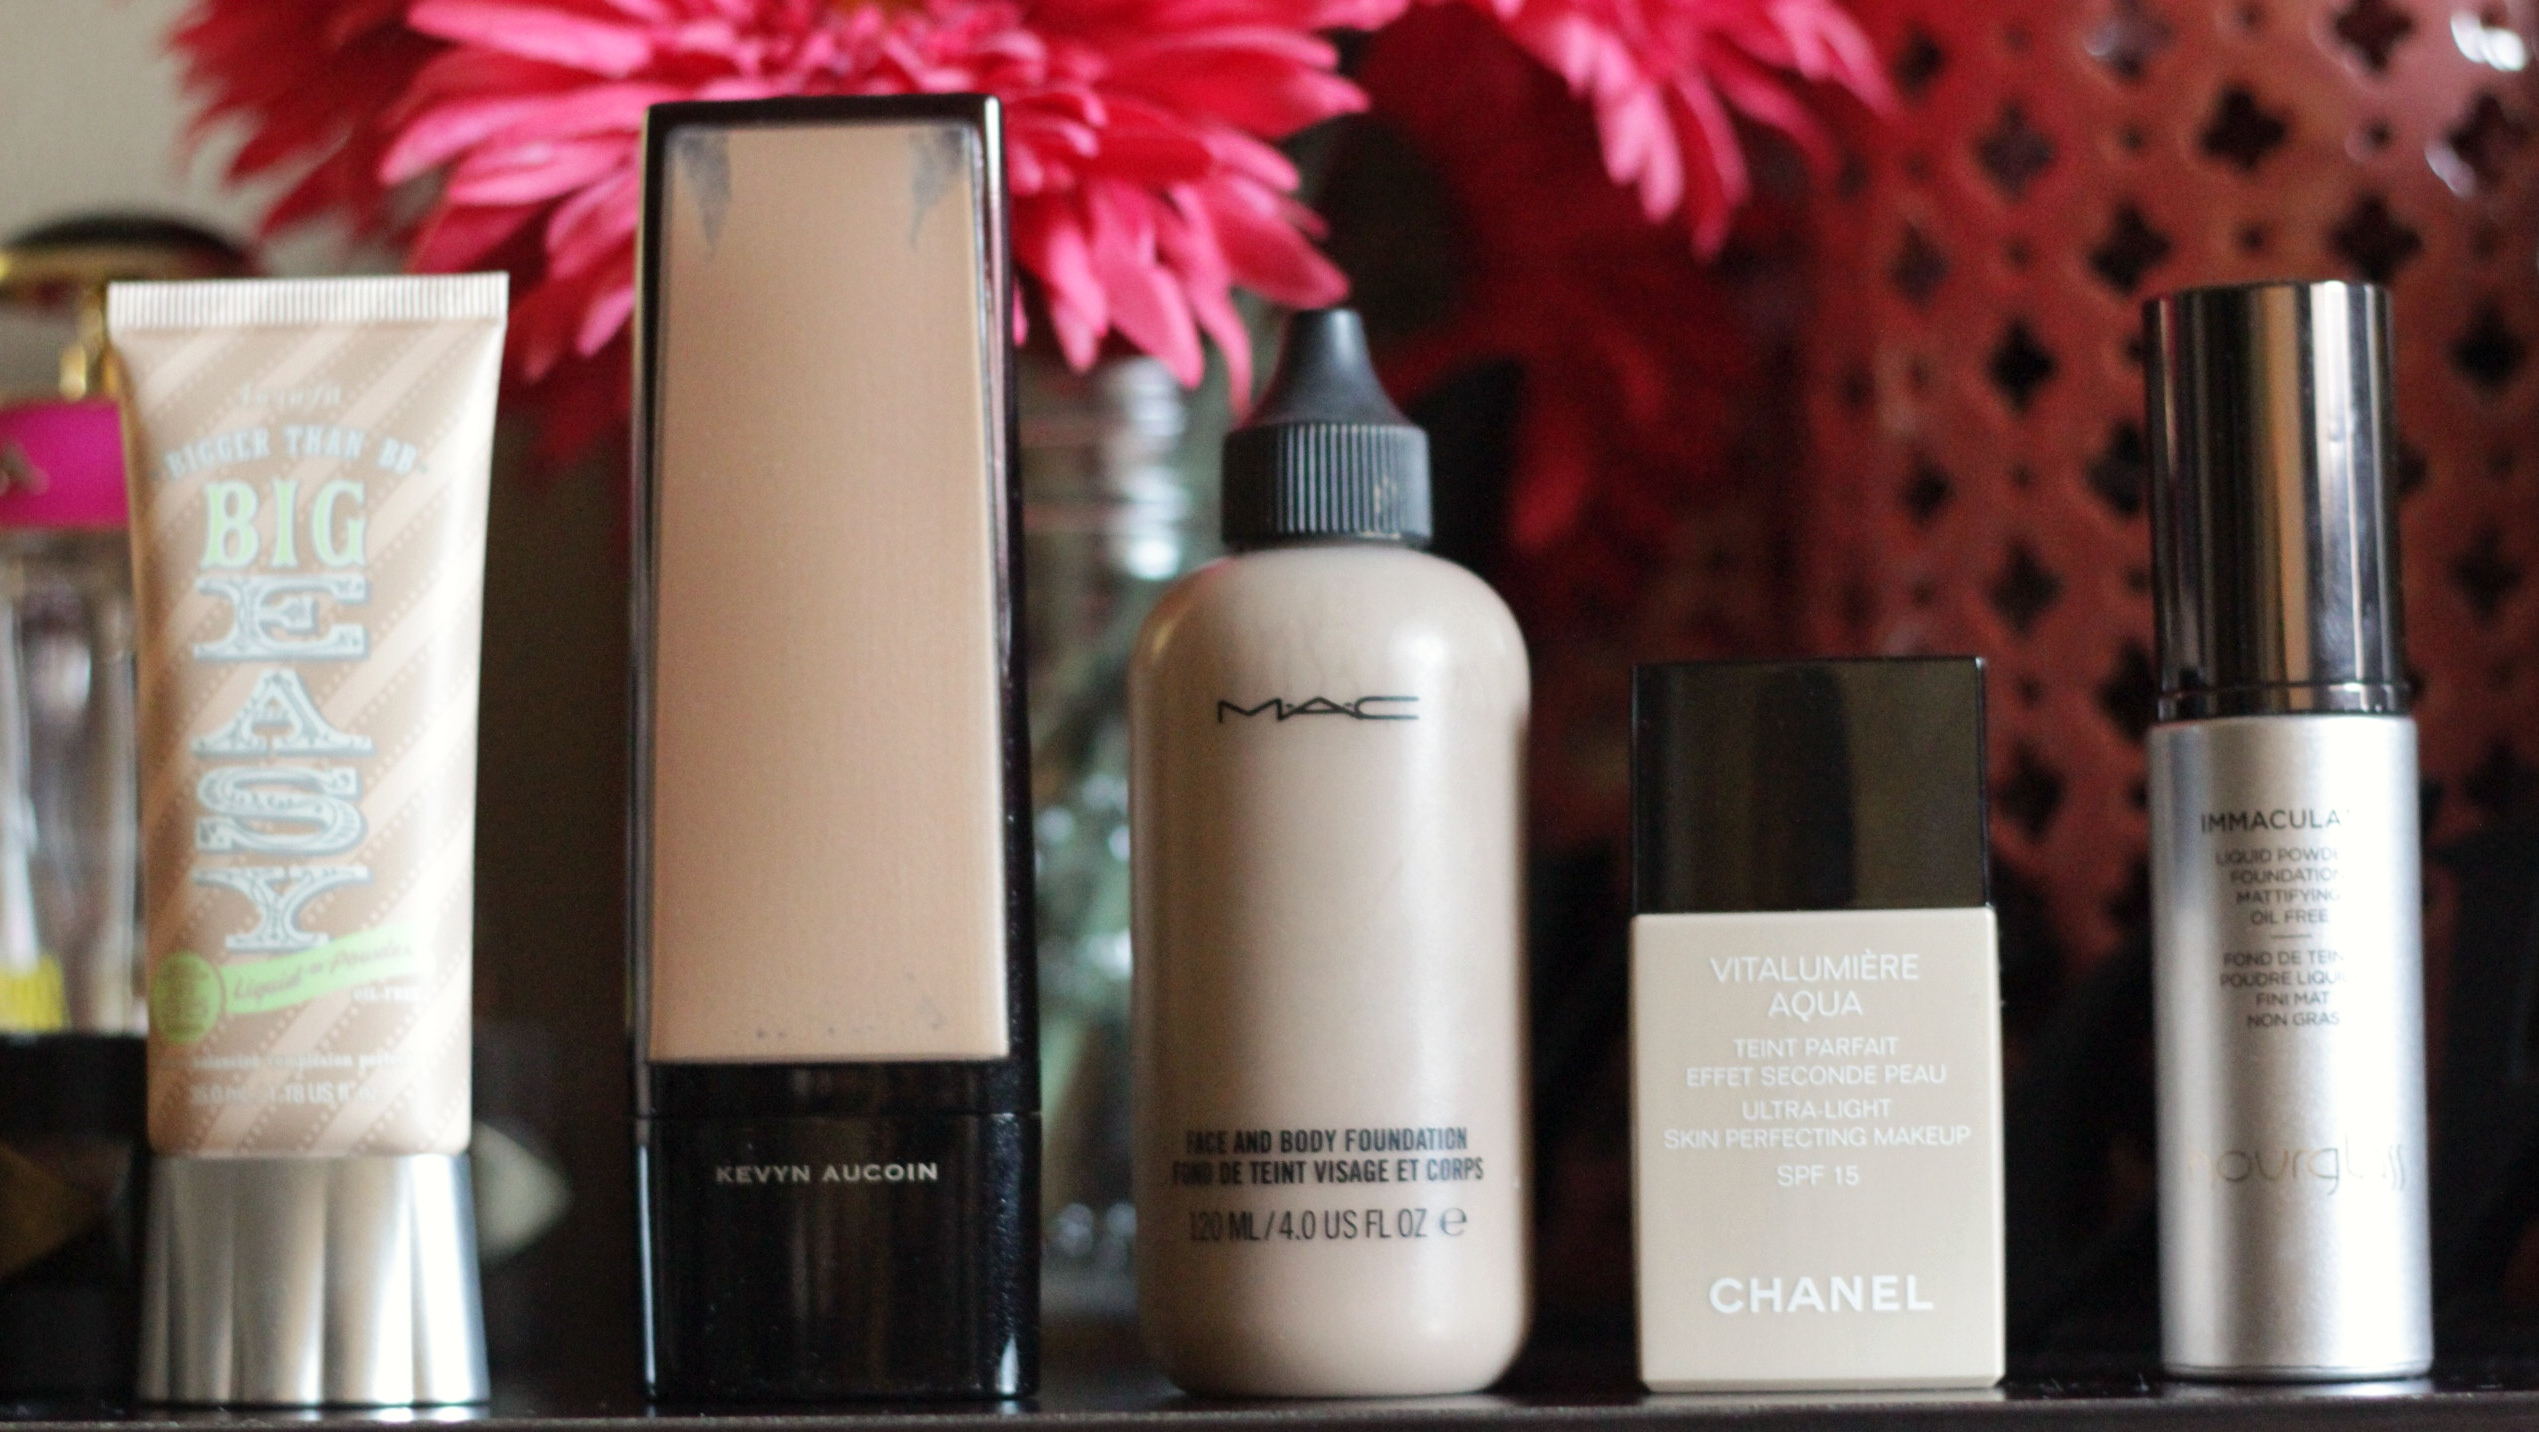 chanel-benefit-mac-kevyn aucoin-hourglass-foundations